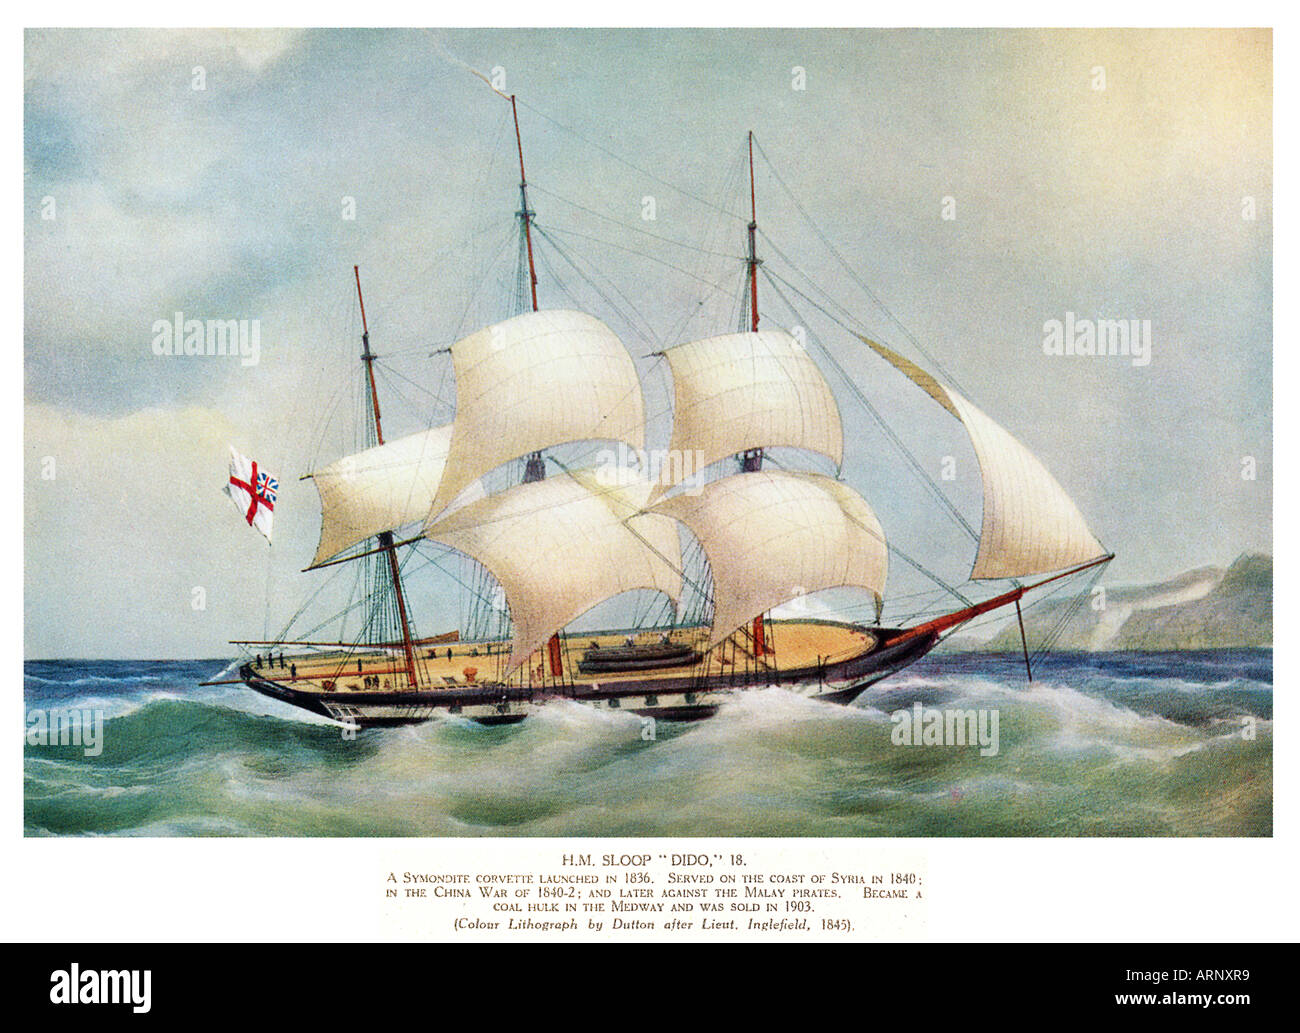 HM Sloop Dido 1845 print of a Symondite corvette launched in 1836 which served in the Near and Far East - Stock Image